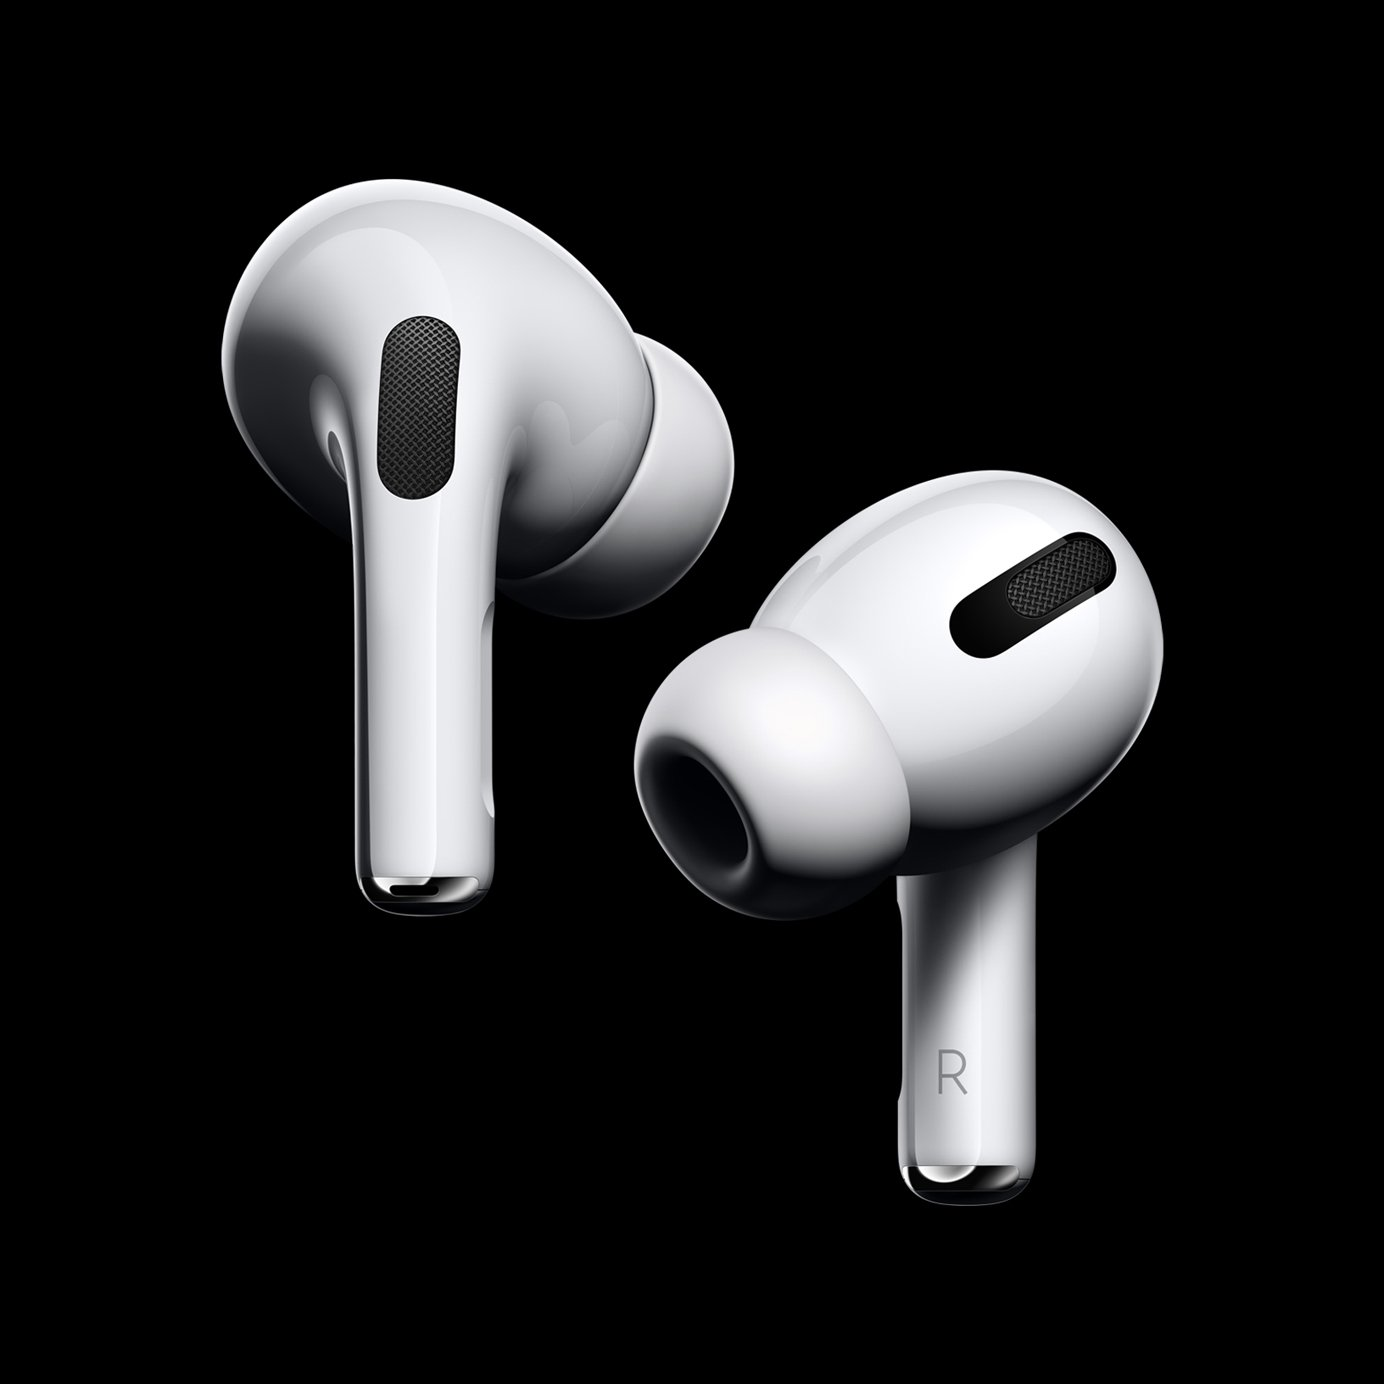 iPhone AirPods 2019